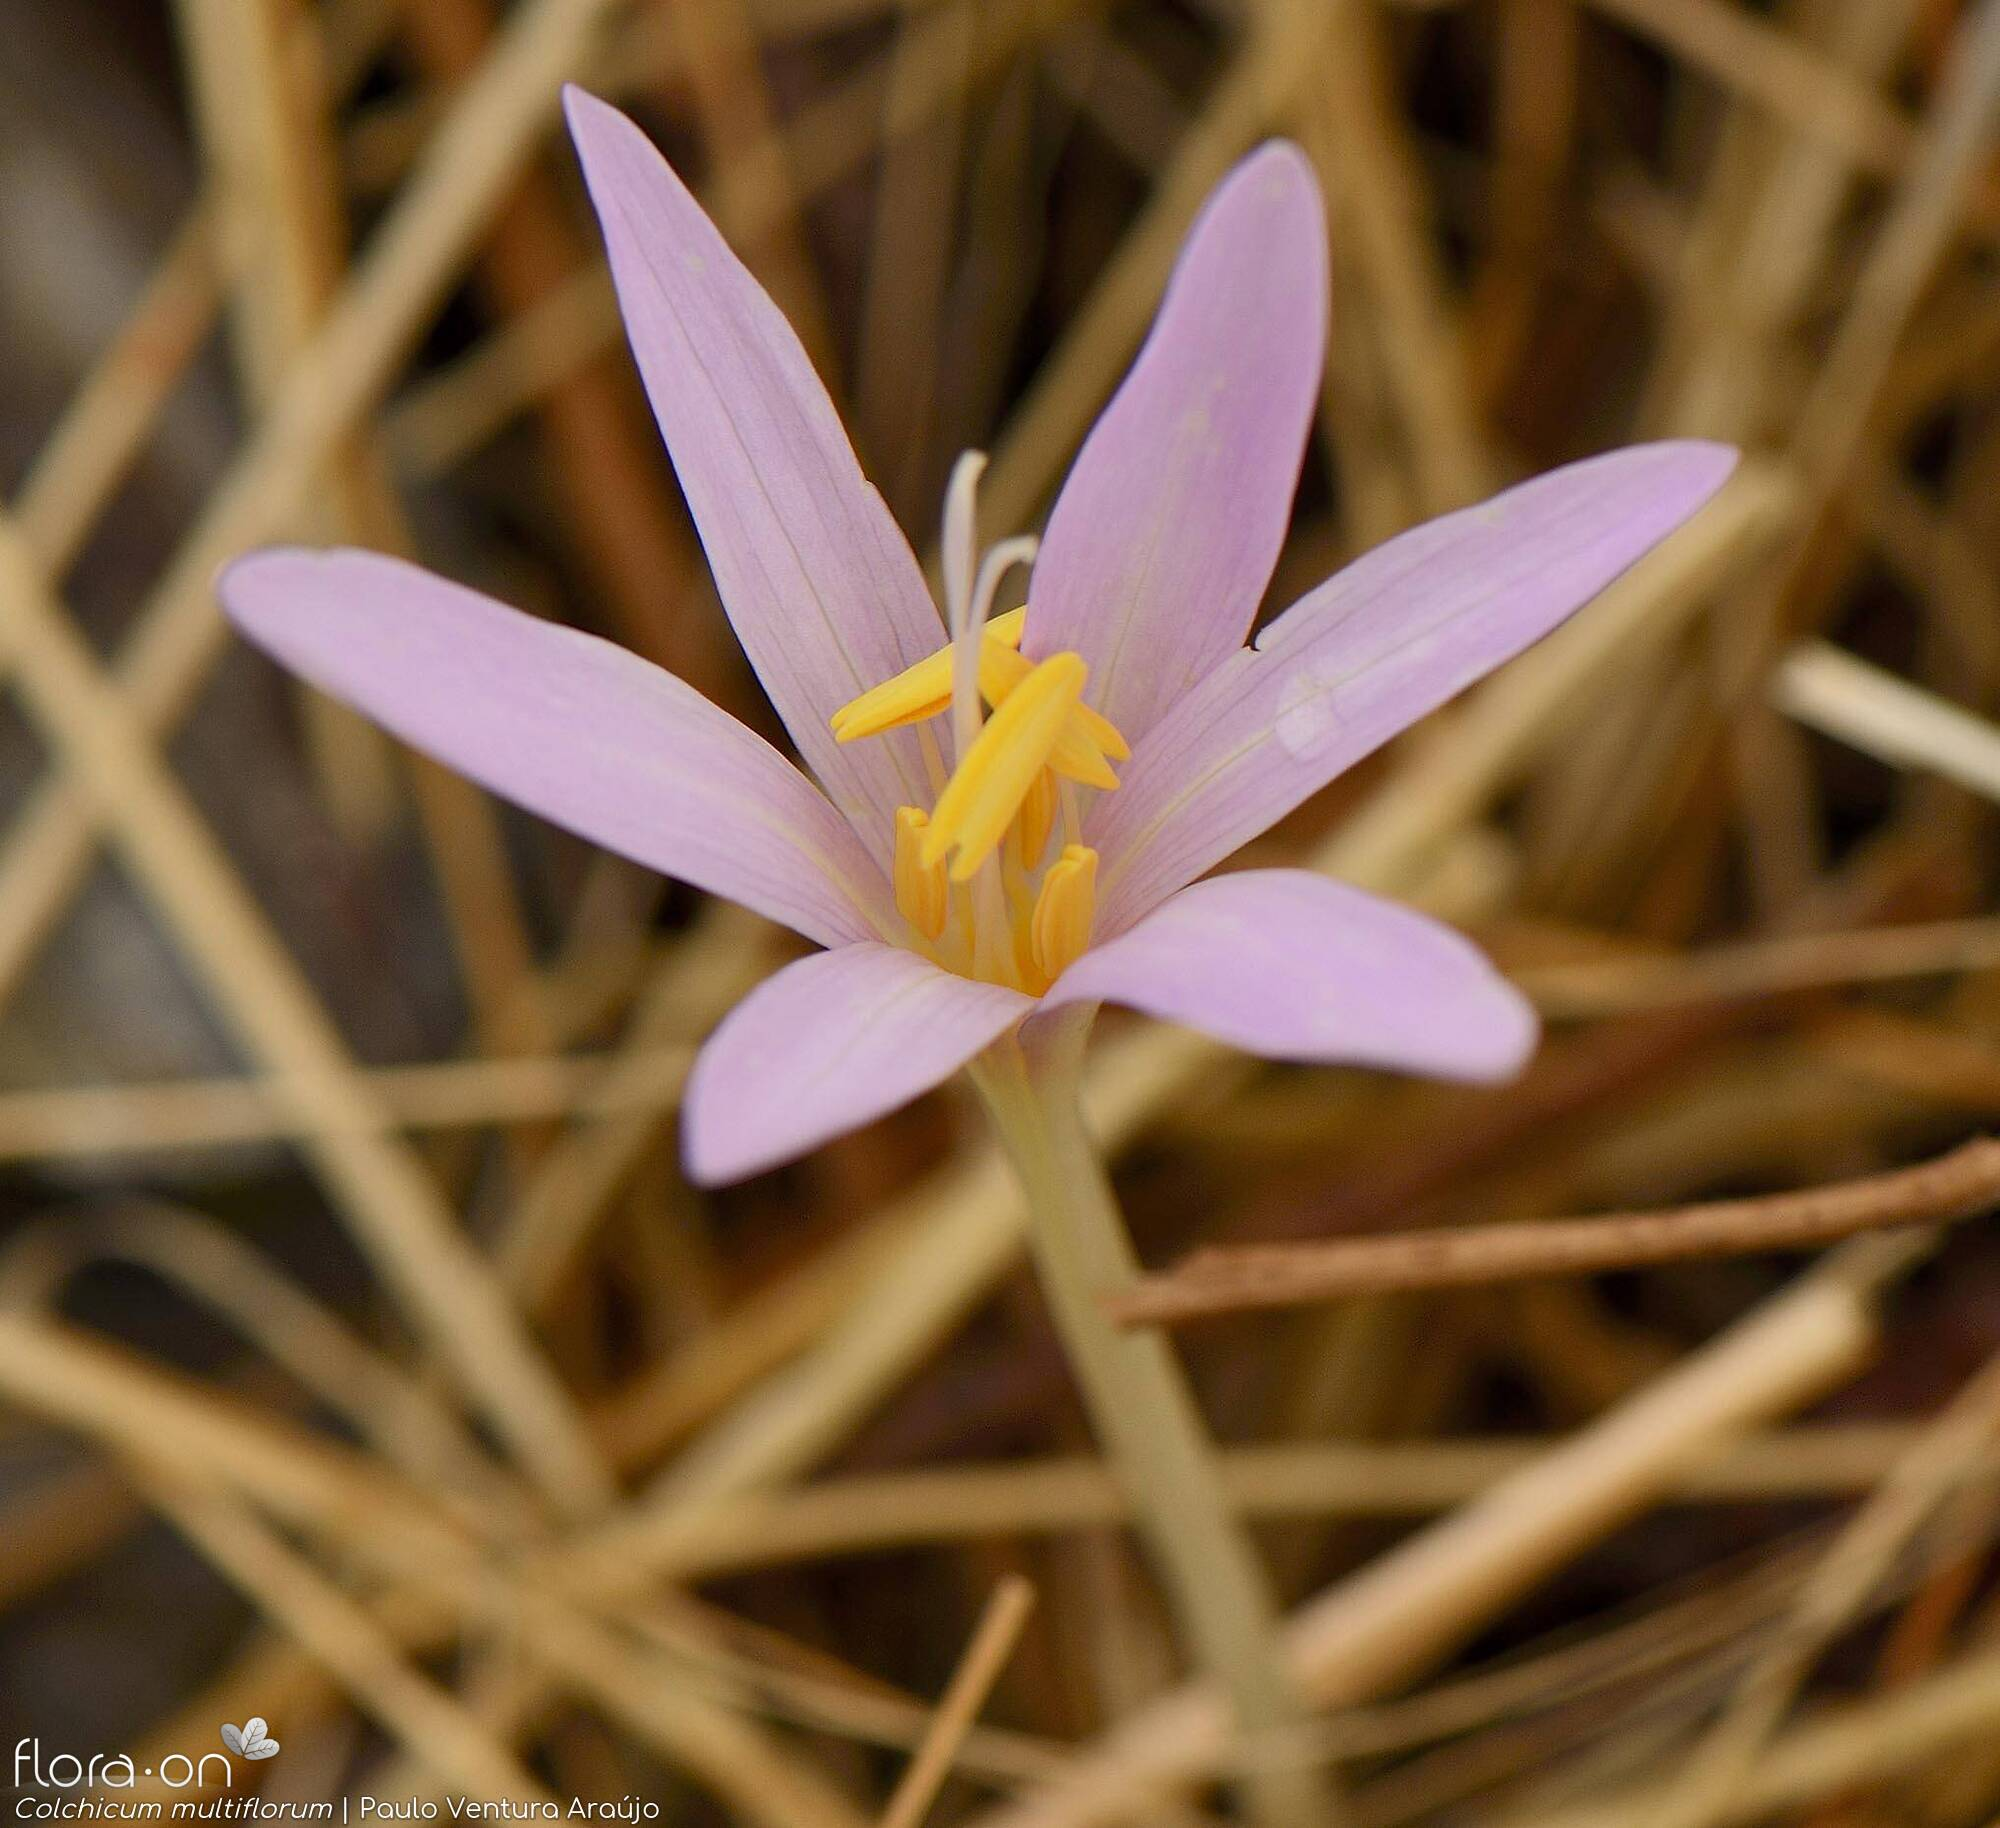 Colchicum multiflorum - Flor (close-up) | Paulo Ventura Araújo; CC BY-NC 4.0